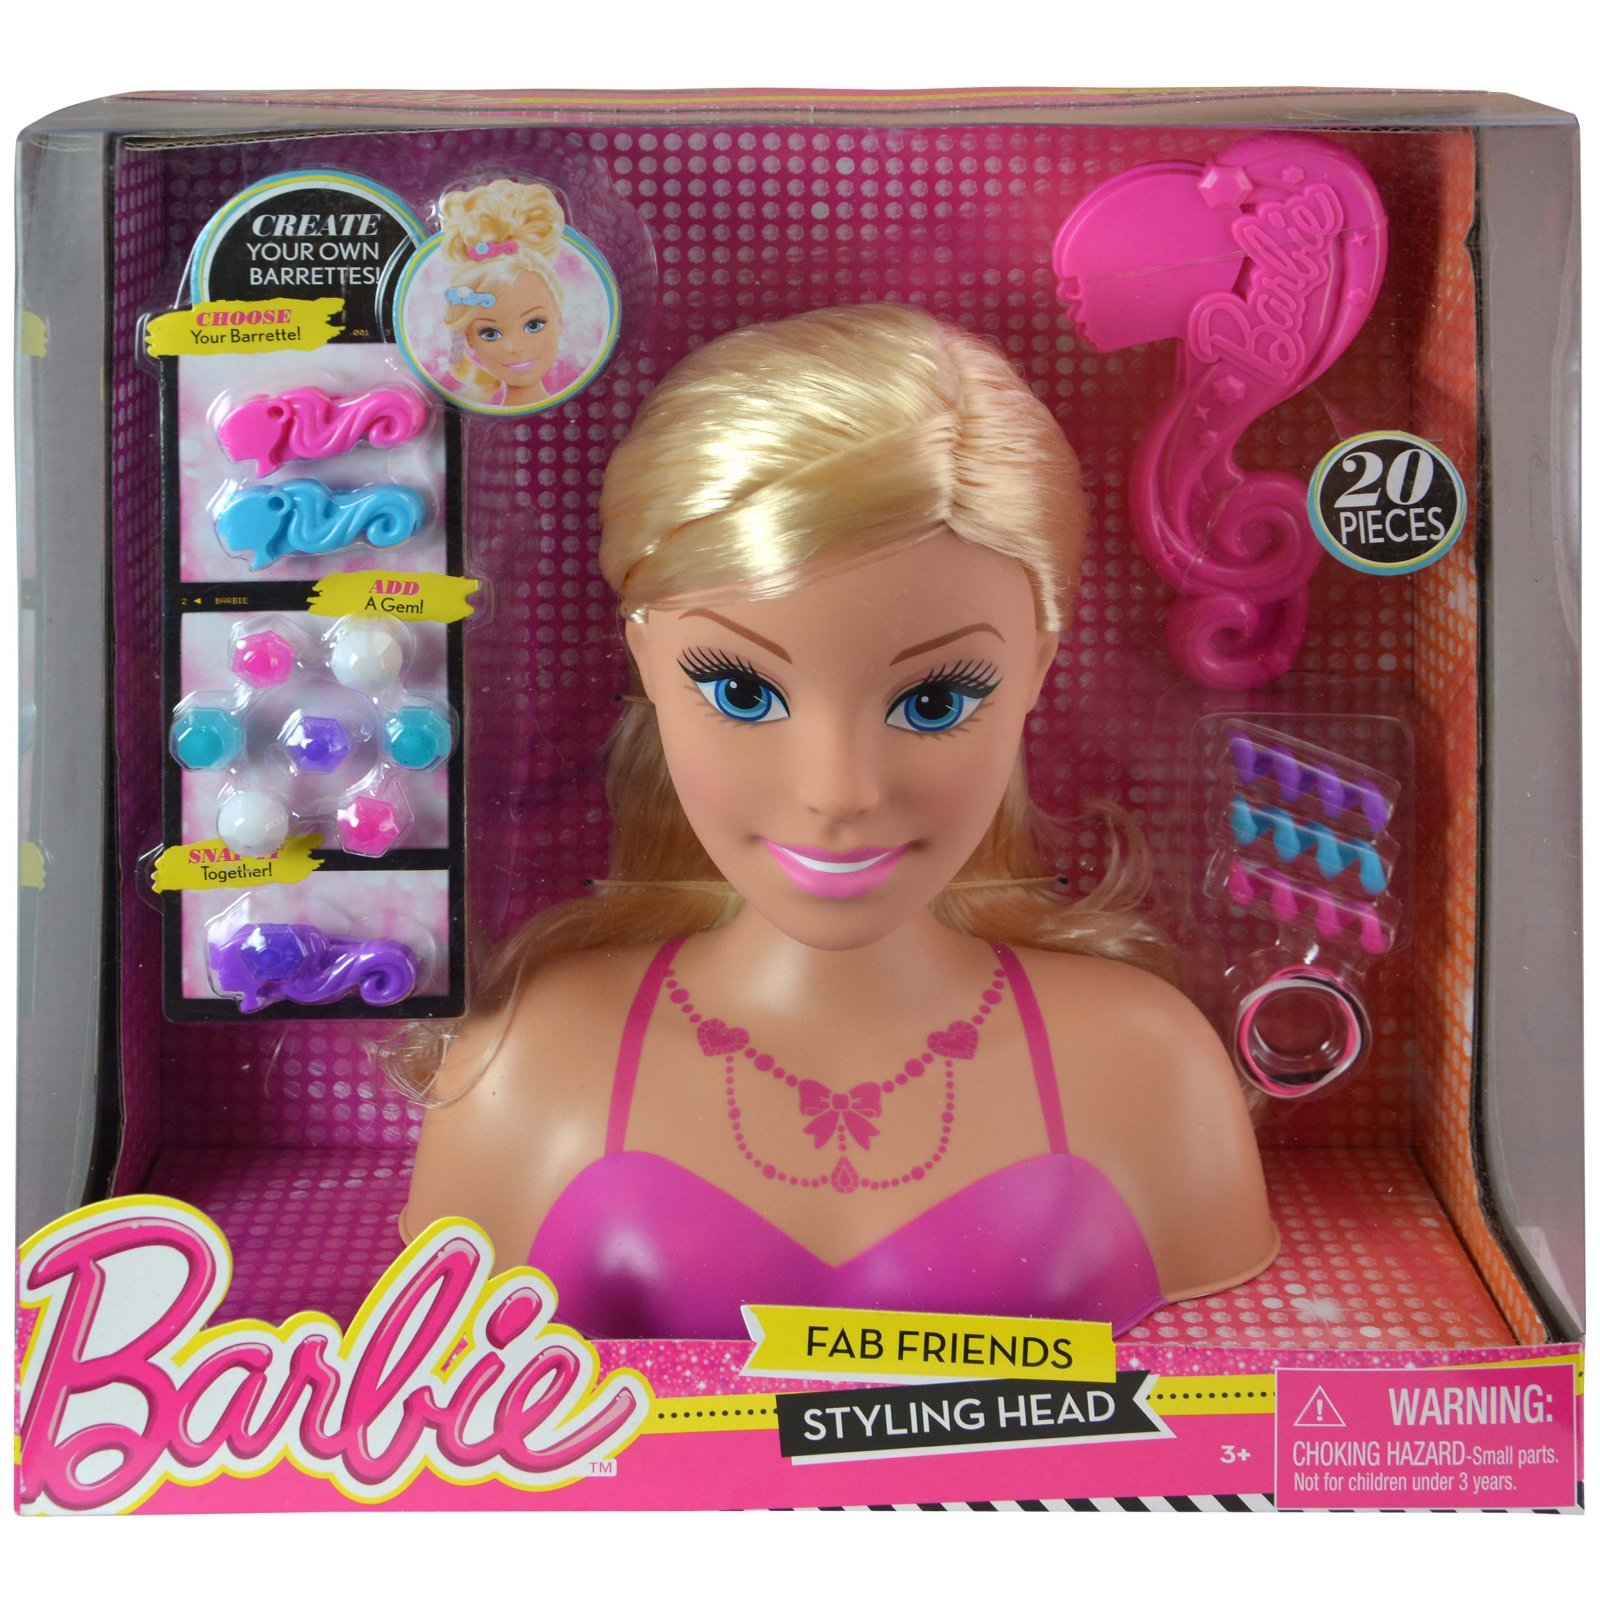 Mattel Barbie Styling Hair Doll Head Girls Pretend Play Dress Up with Accessories 20 pieces